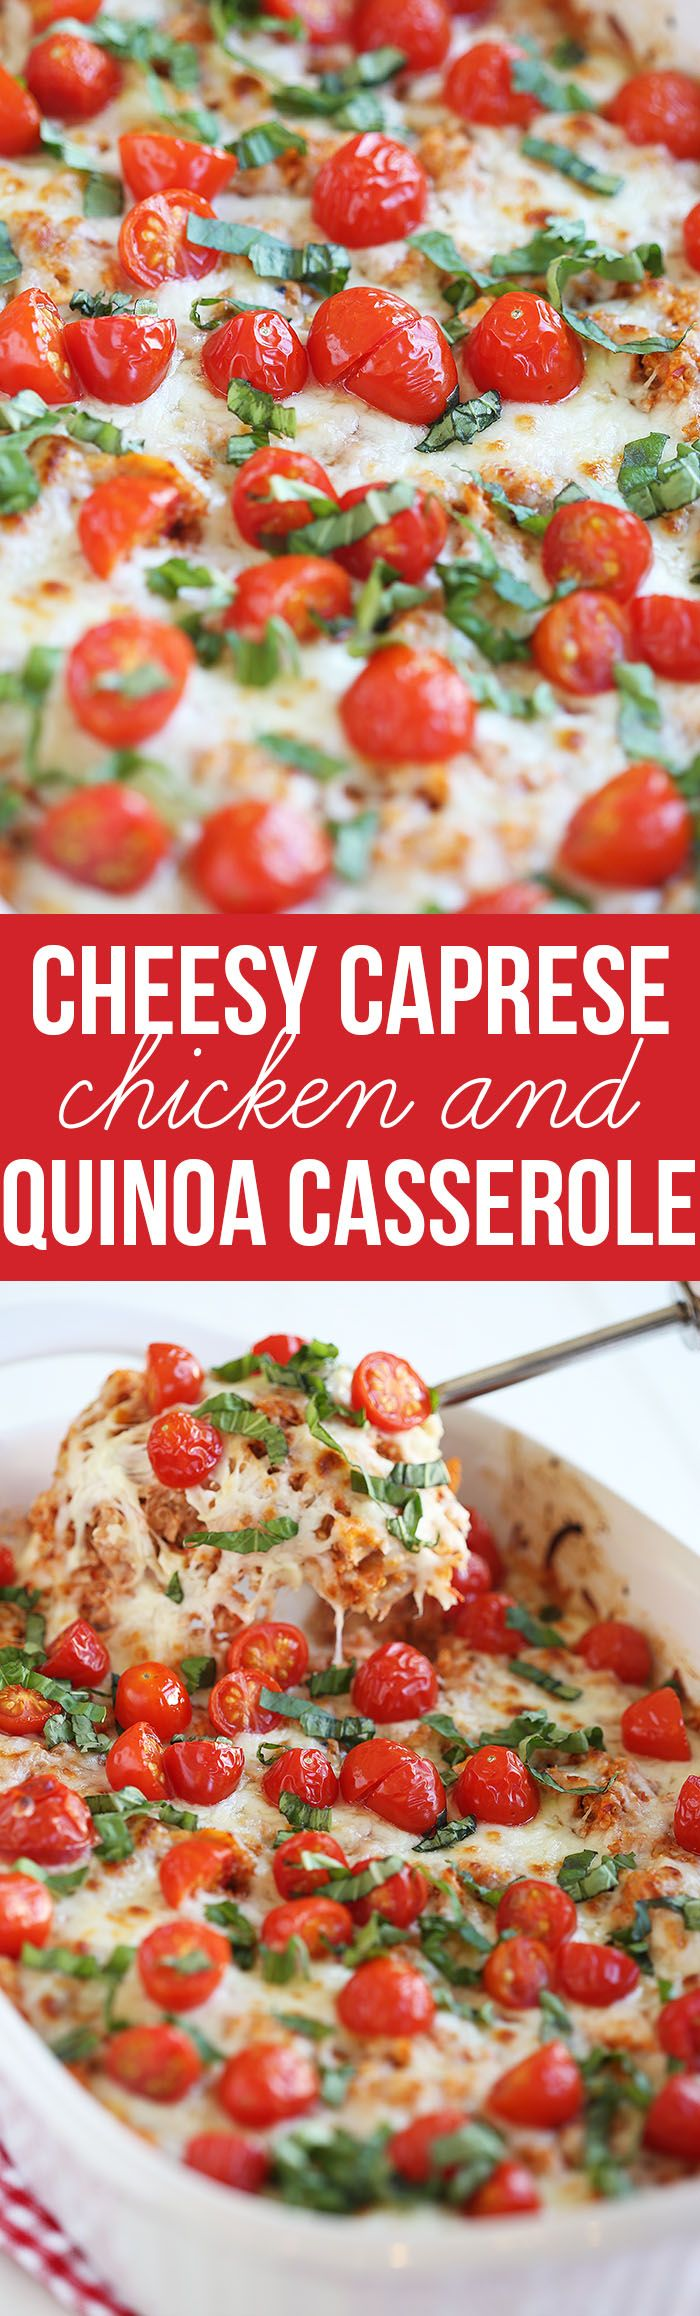 This recipe for Cheesy Caprese Chicken and Quinoa Casserole is the perfect healthy weeknight dinner that is hearty, full of flavor and sure to please your entire family!